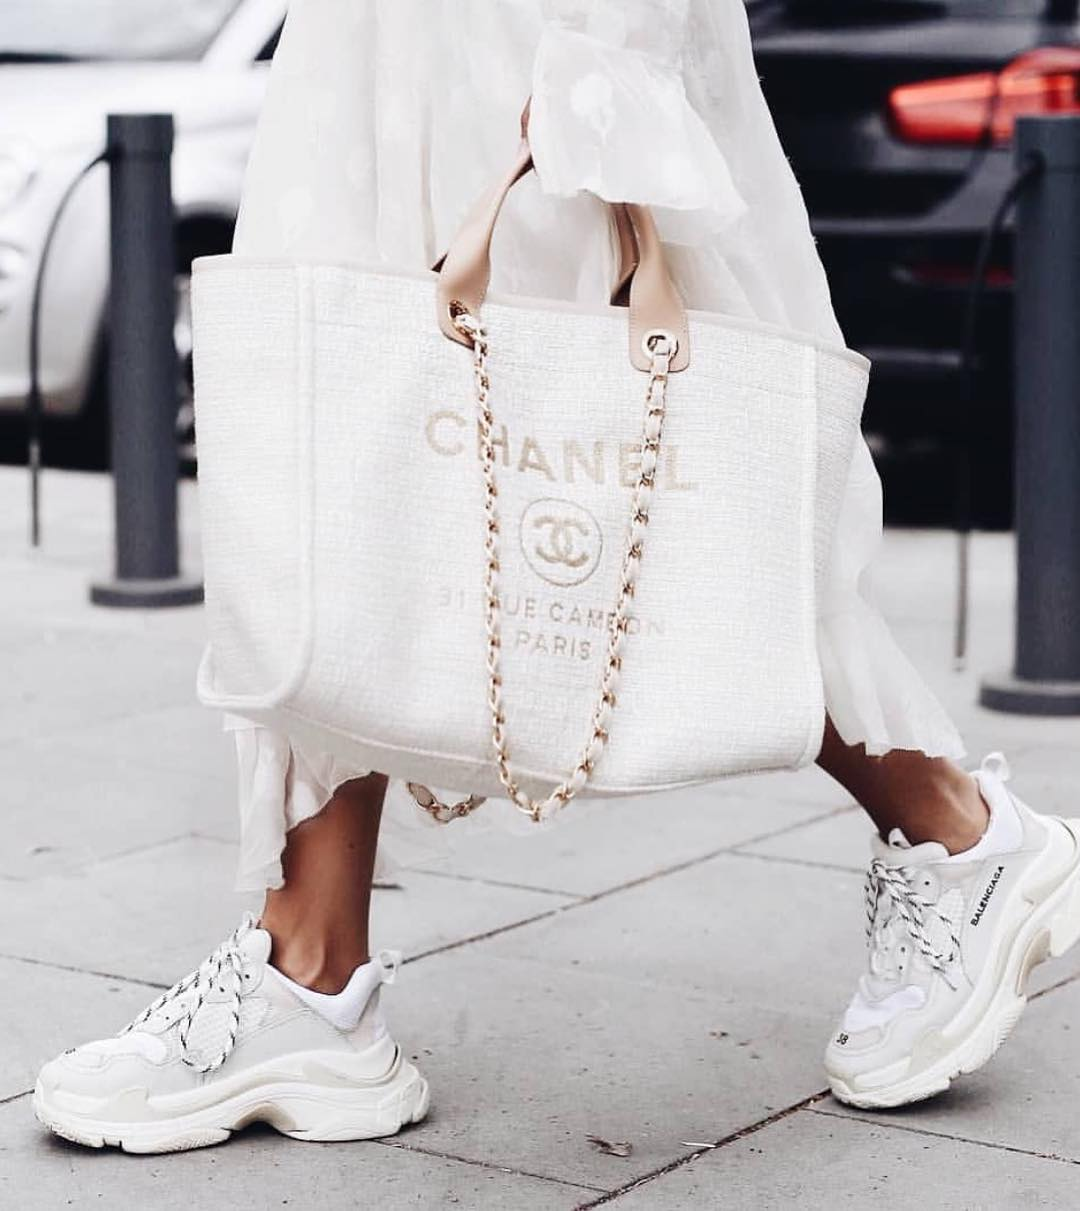 Ideal All White Look For Fall: Chunky Sneakers, Long Dress And Big Tote Bag 2020